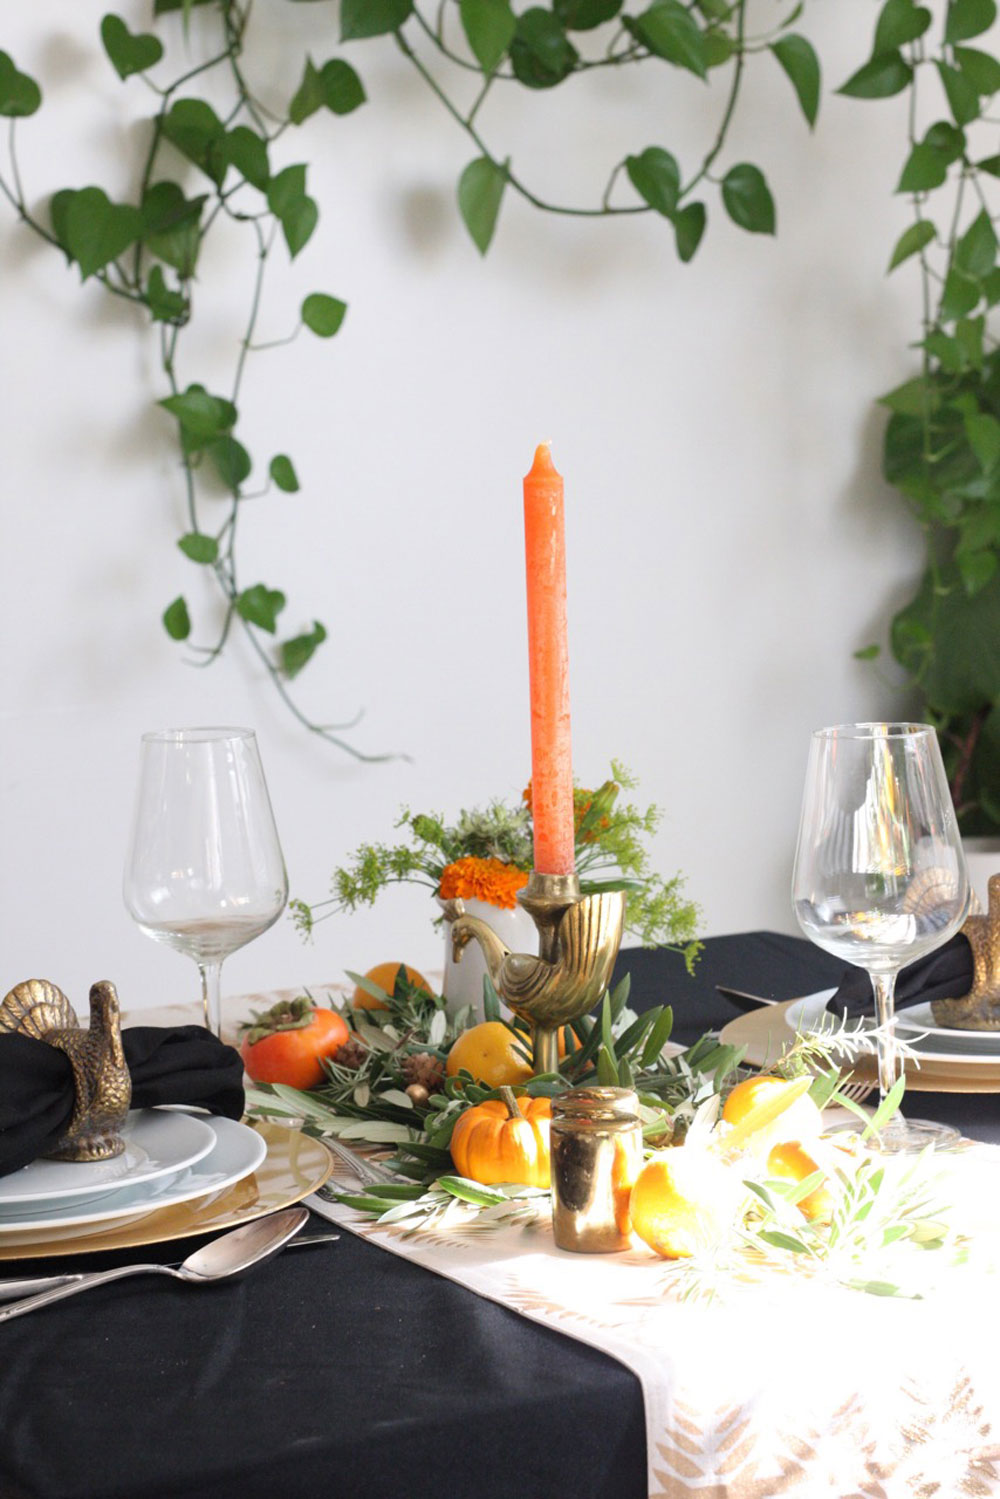 jestcafe.com-thanksgivingtablesettings22